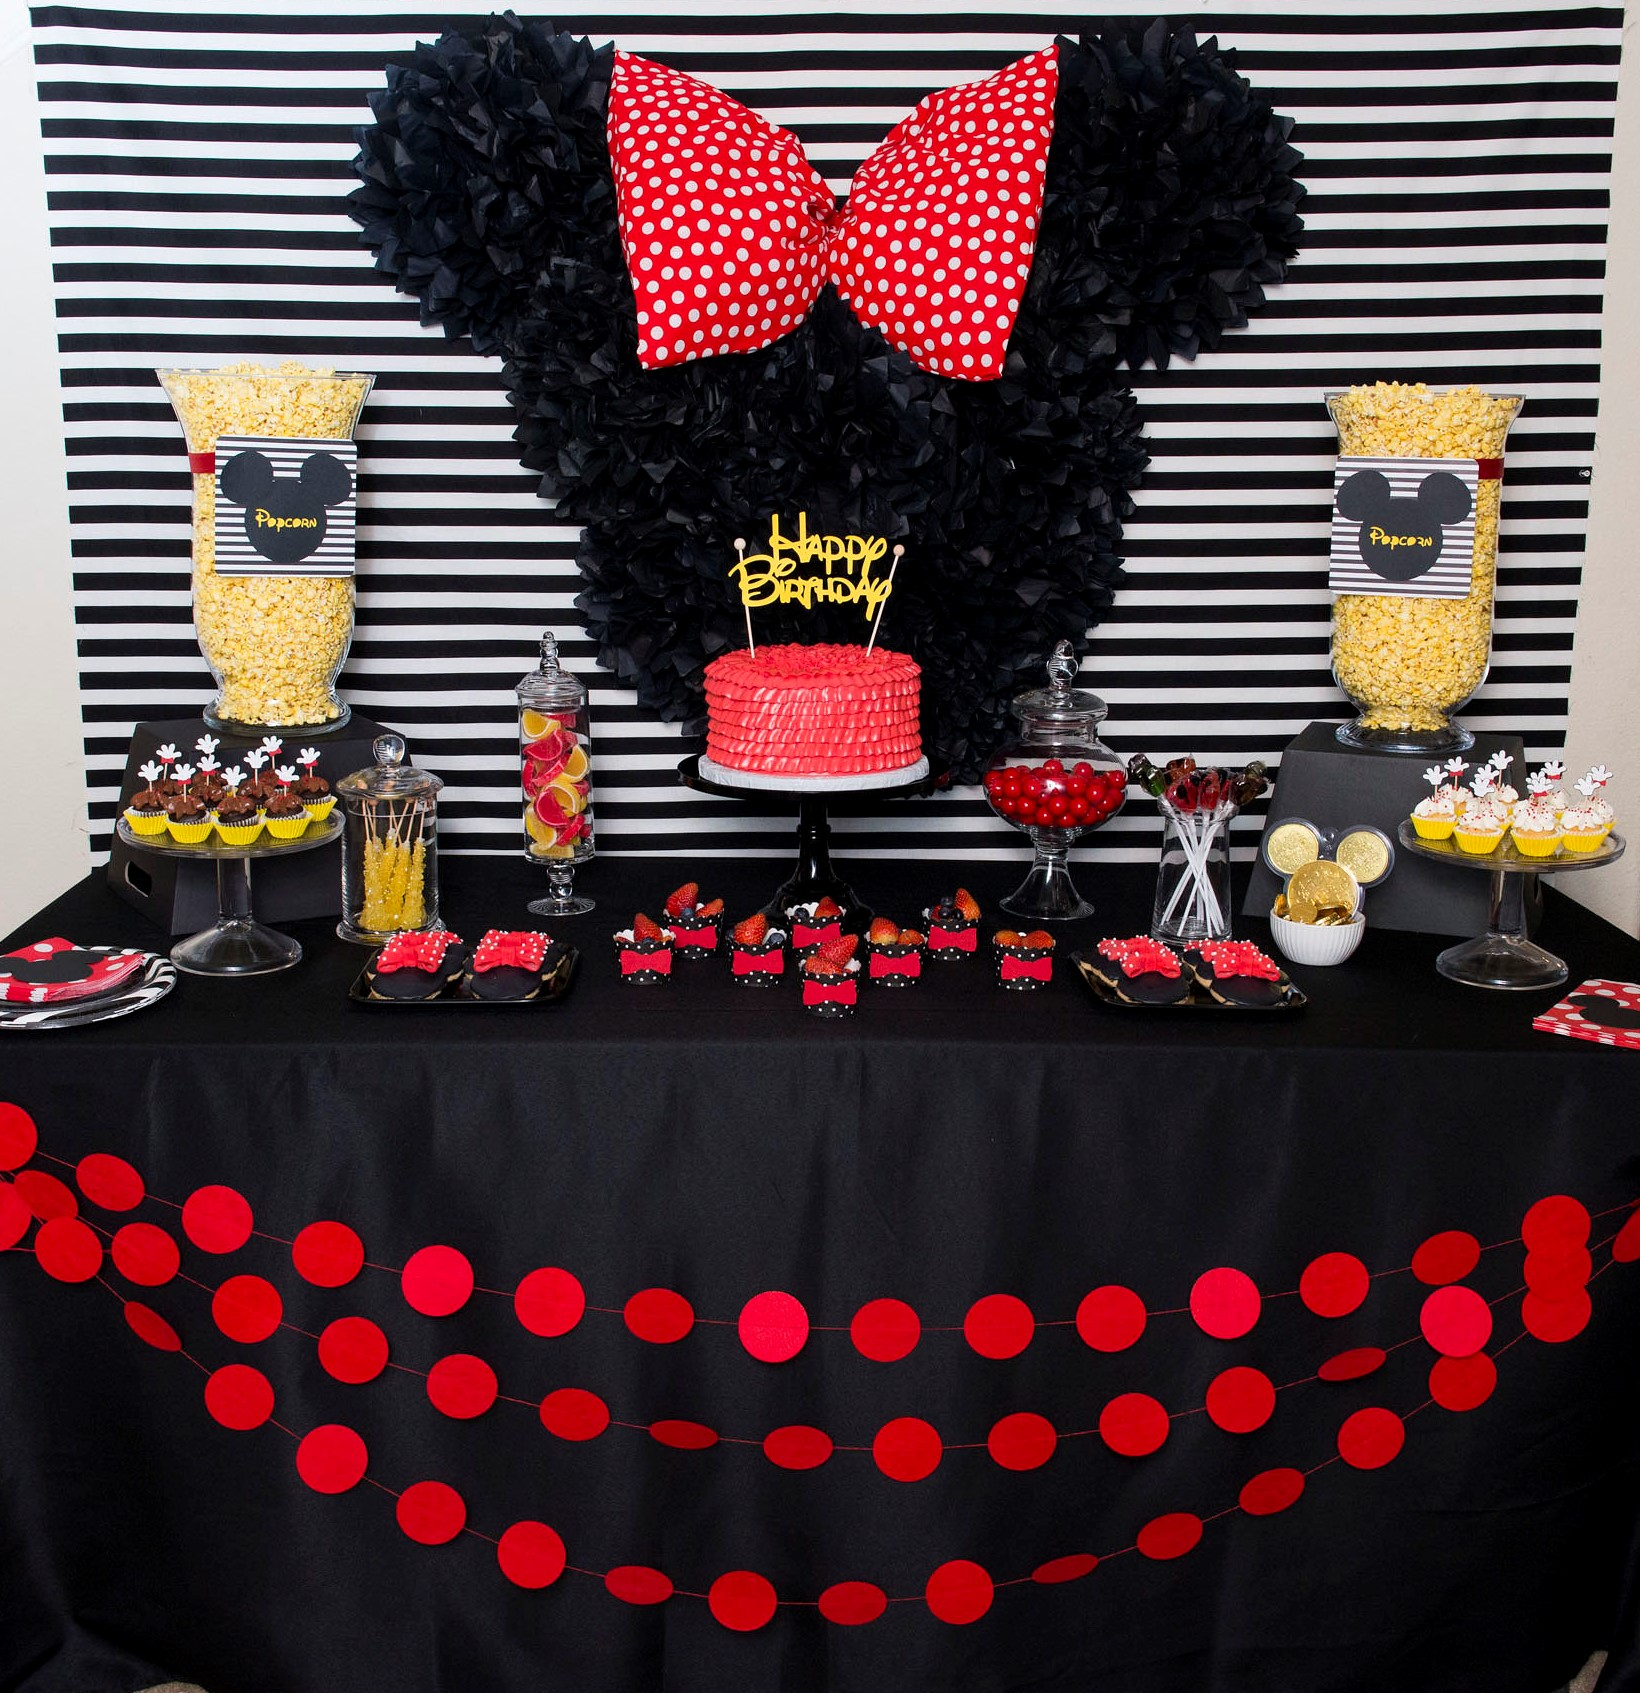 Mickey and Minnie Mouse themed Birthday Dessert table from Mint Event Design, Austin Texas based Party stylist